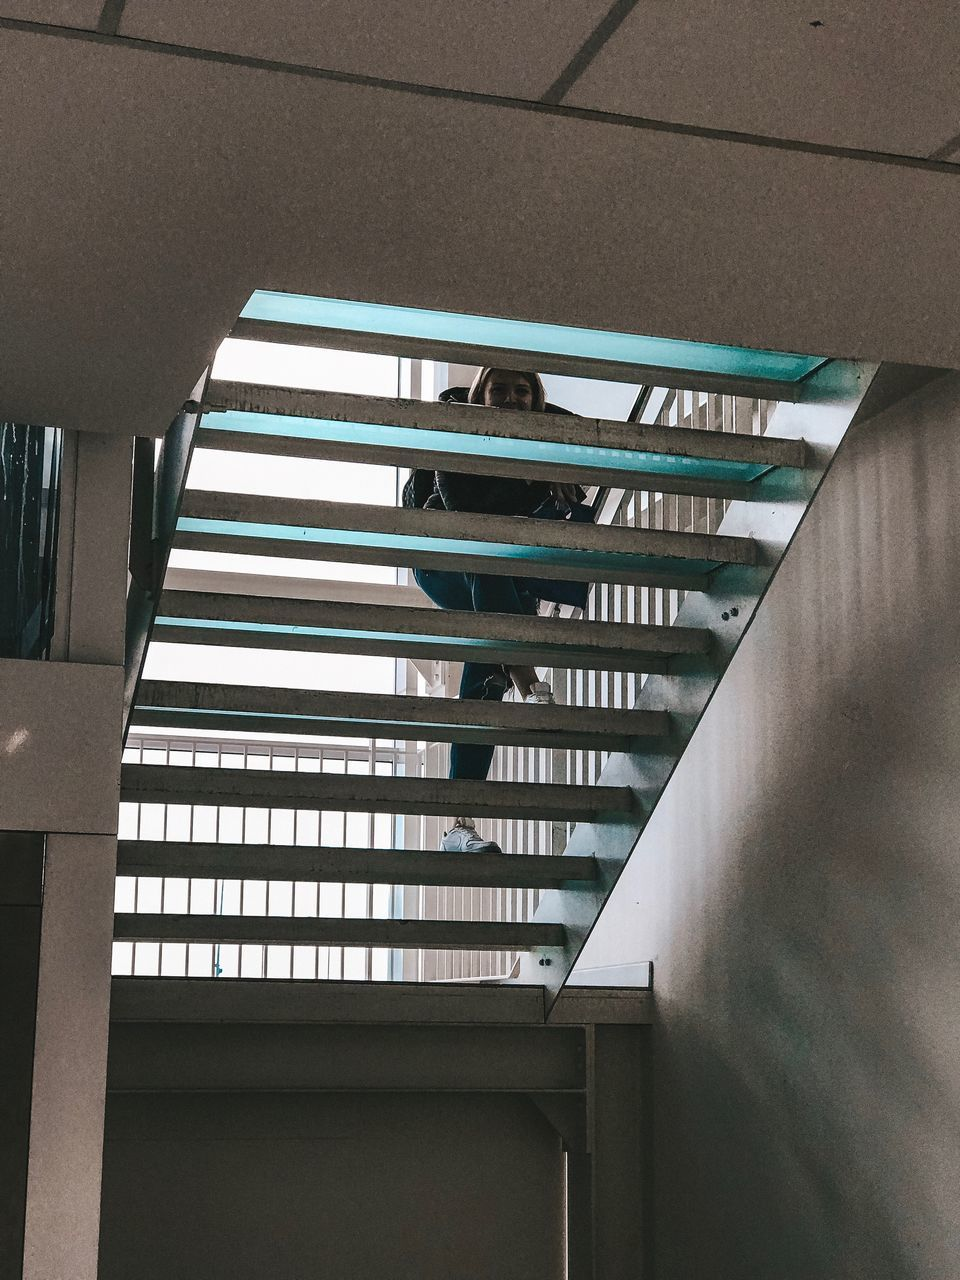 architecture, built structure, indoors, railing, low angle view, no people, building, day, staircase, steps and staircases, pattern, ceiling, glass - material, wall - building feature, window, empty, modern